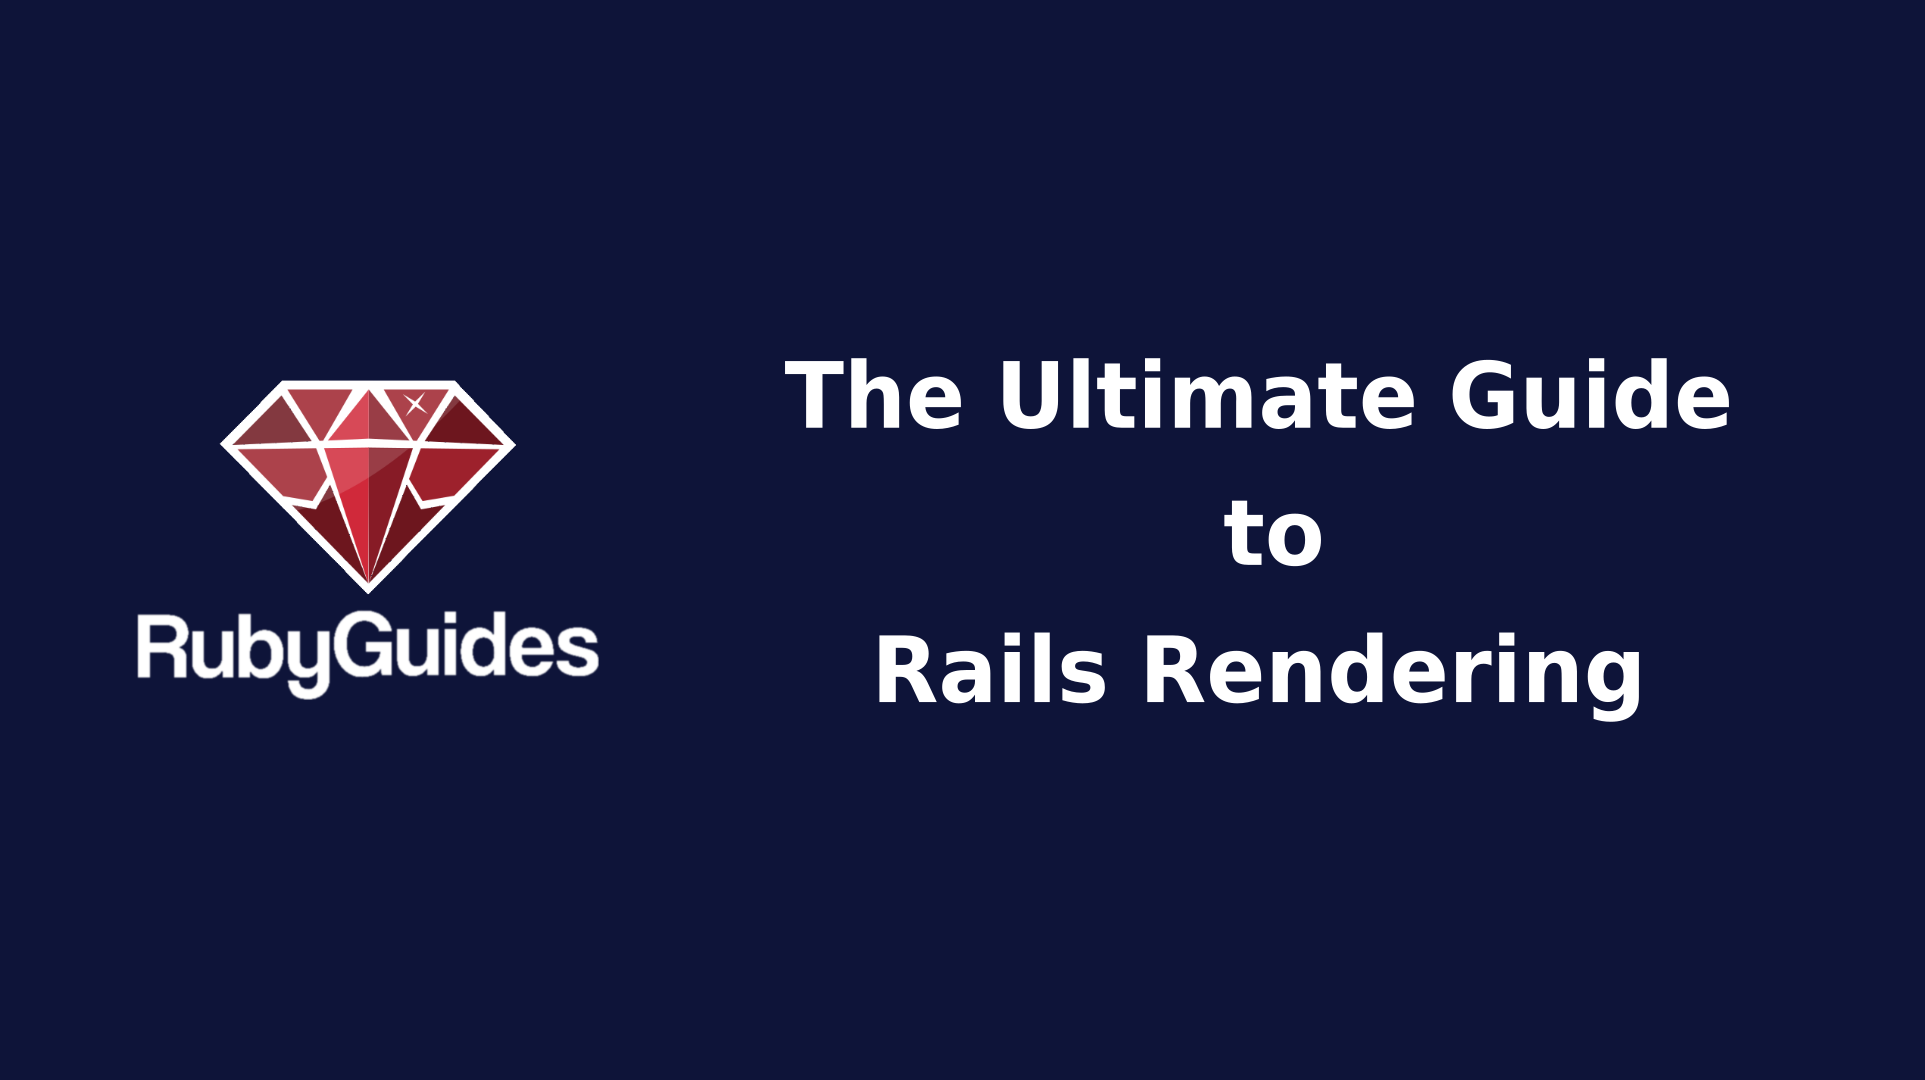 The Ultimate Guide to Rails Rendering - RubyGuides